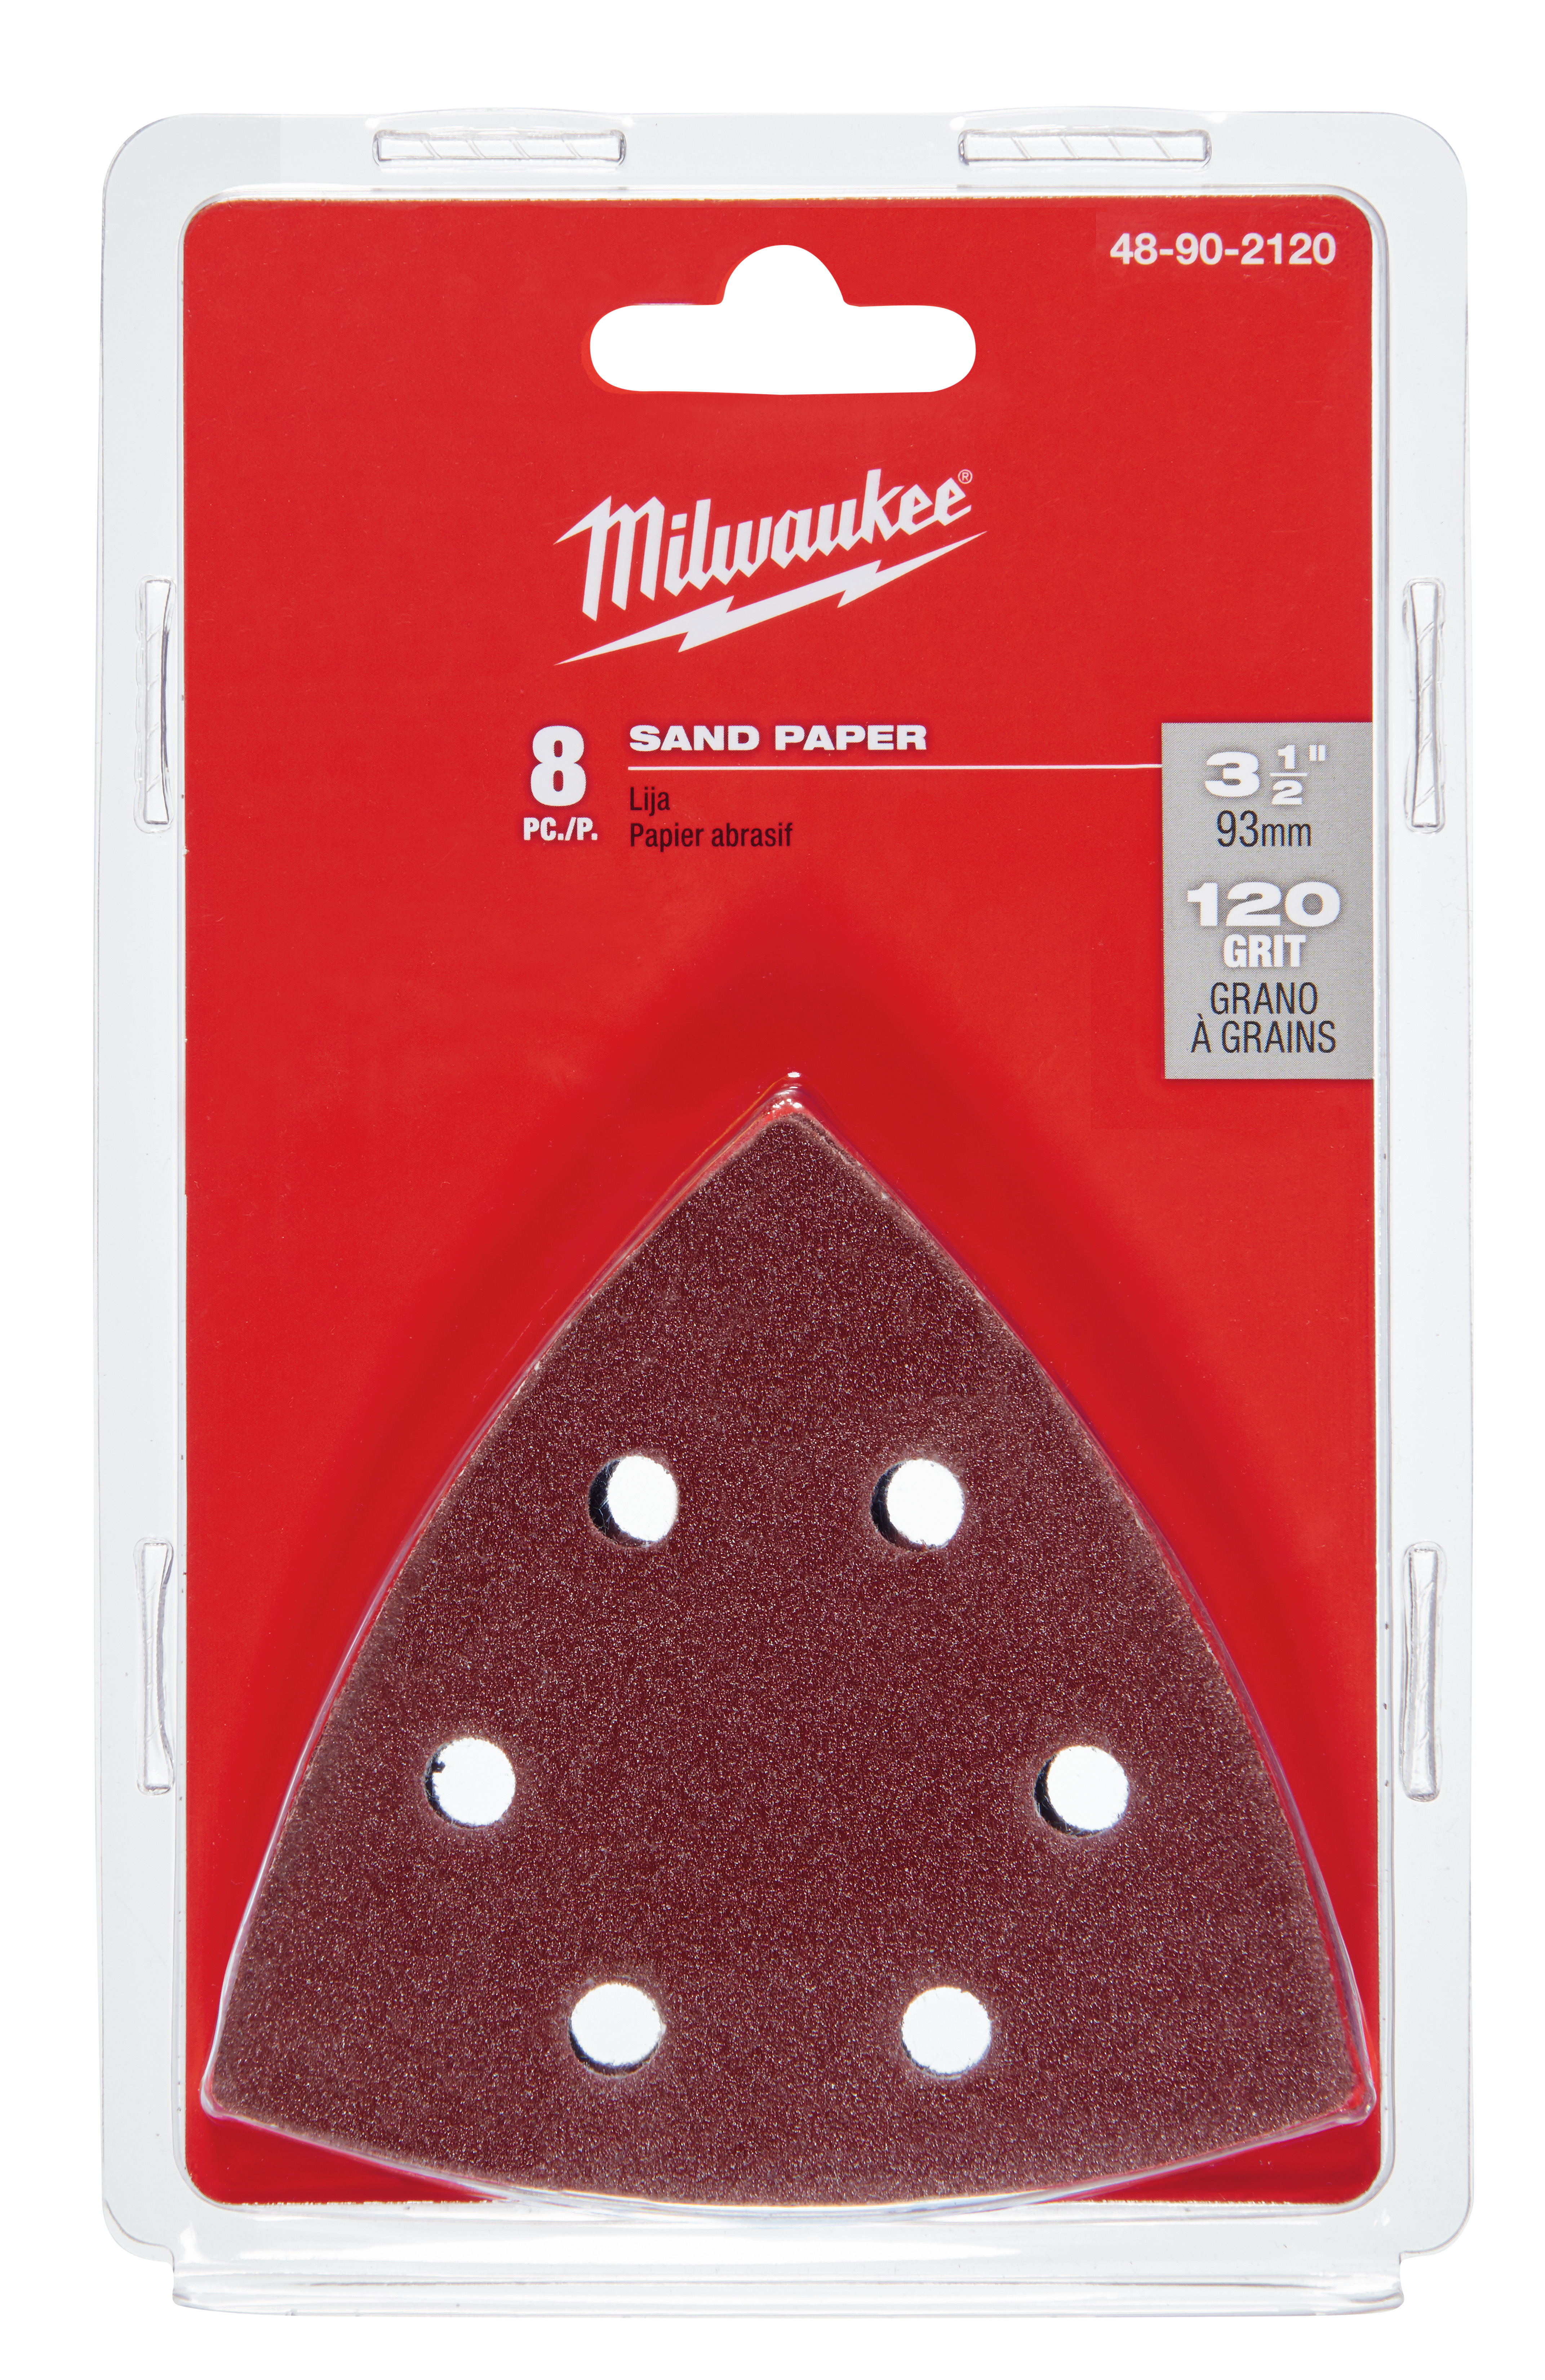 Milwaukee® M18™ 48-90-2120 Multi-Tool Sand Paper, For Use With M18™ 48-90-2000 Sanding Pad, 3-1/2 in L x 3-1/2 in W, 120 Grit, Sandpaper